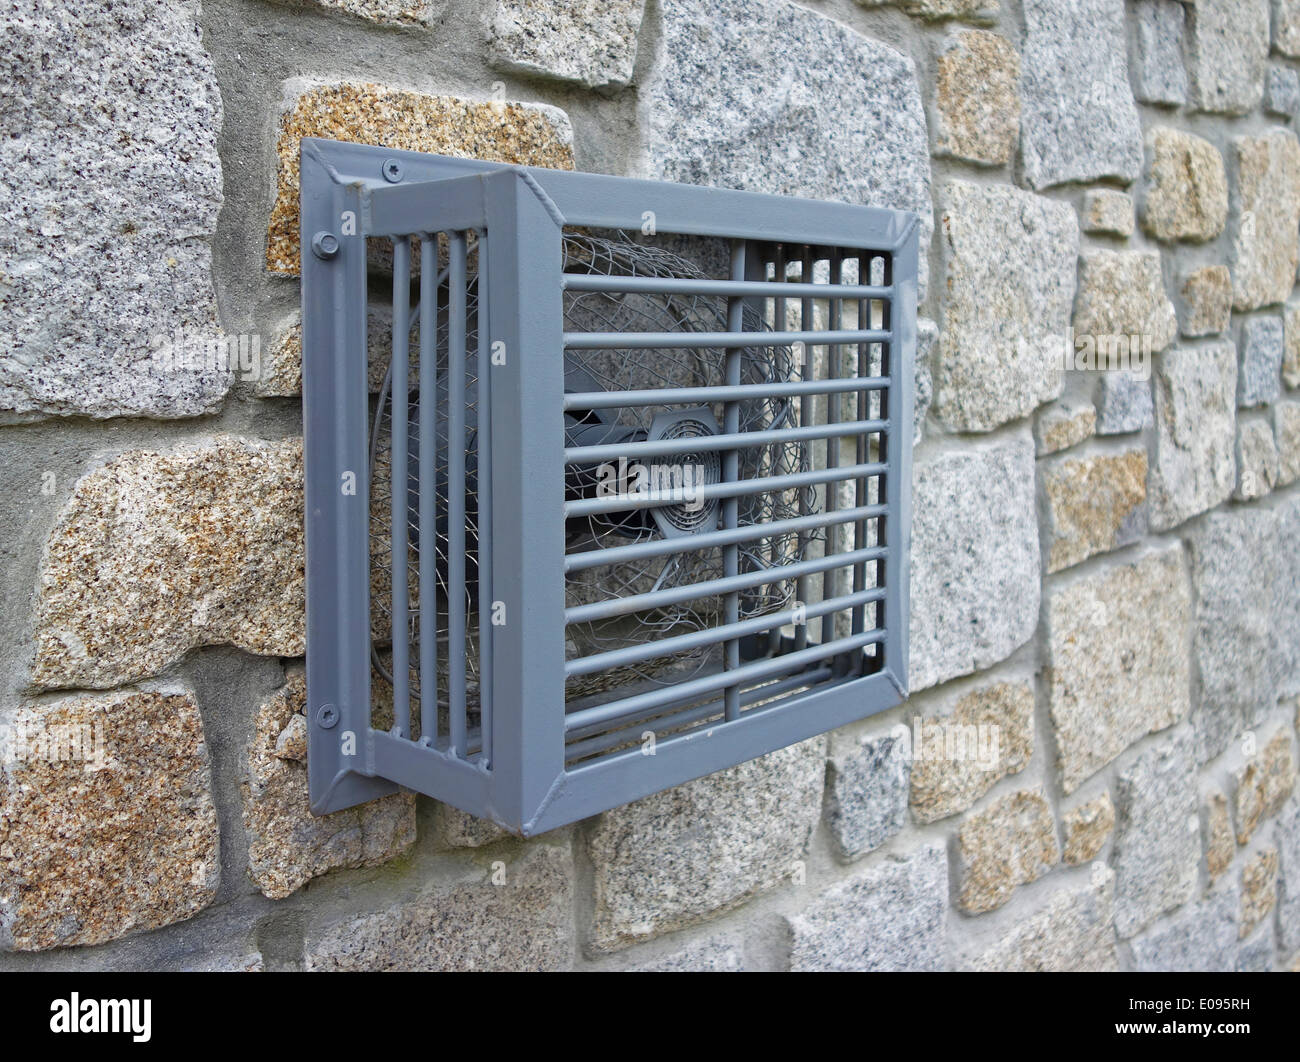 a heating ventilator on the outside of a building - Stock Image